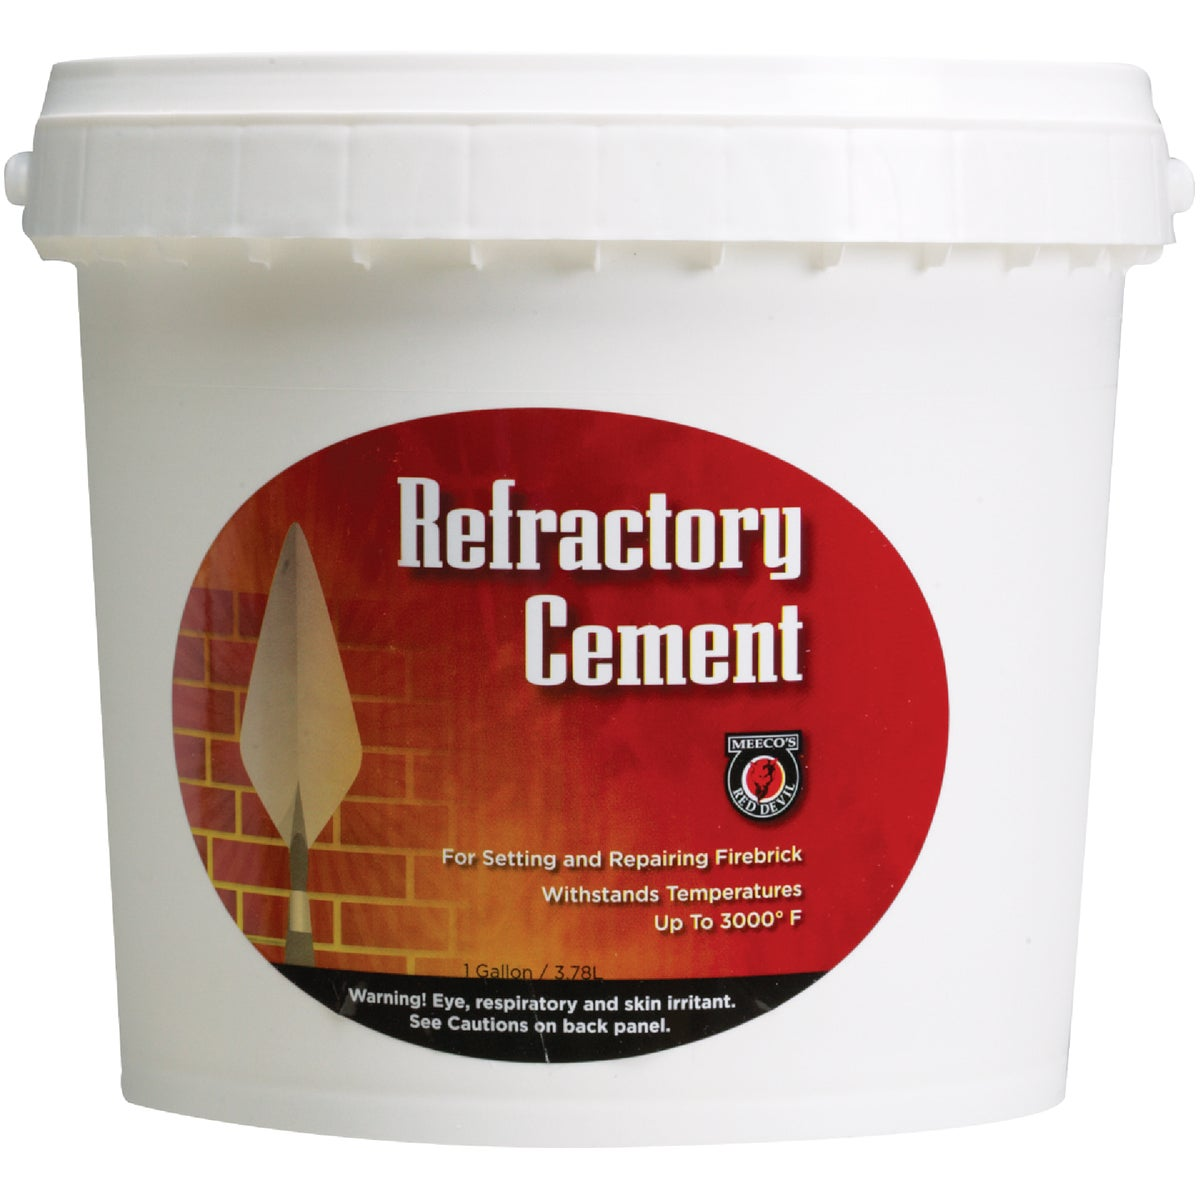 GAL REFRACTORY CEMENT - 611 by Meeco Mfg